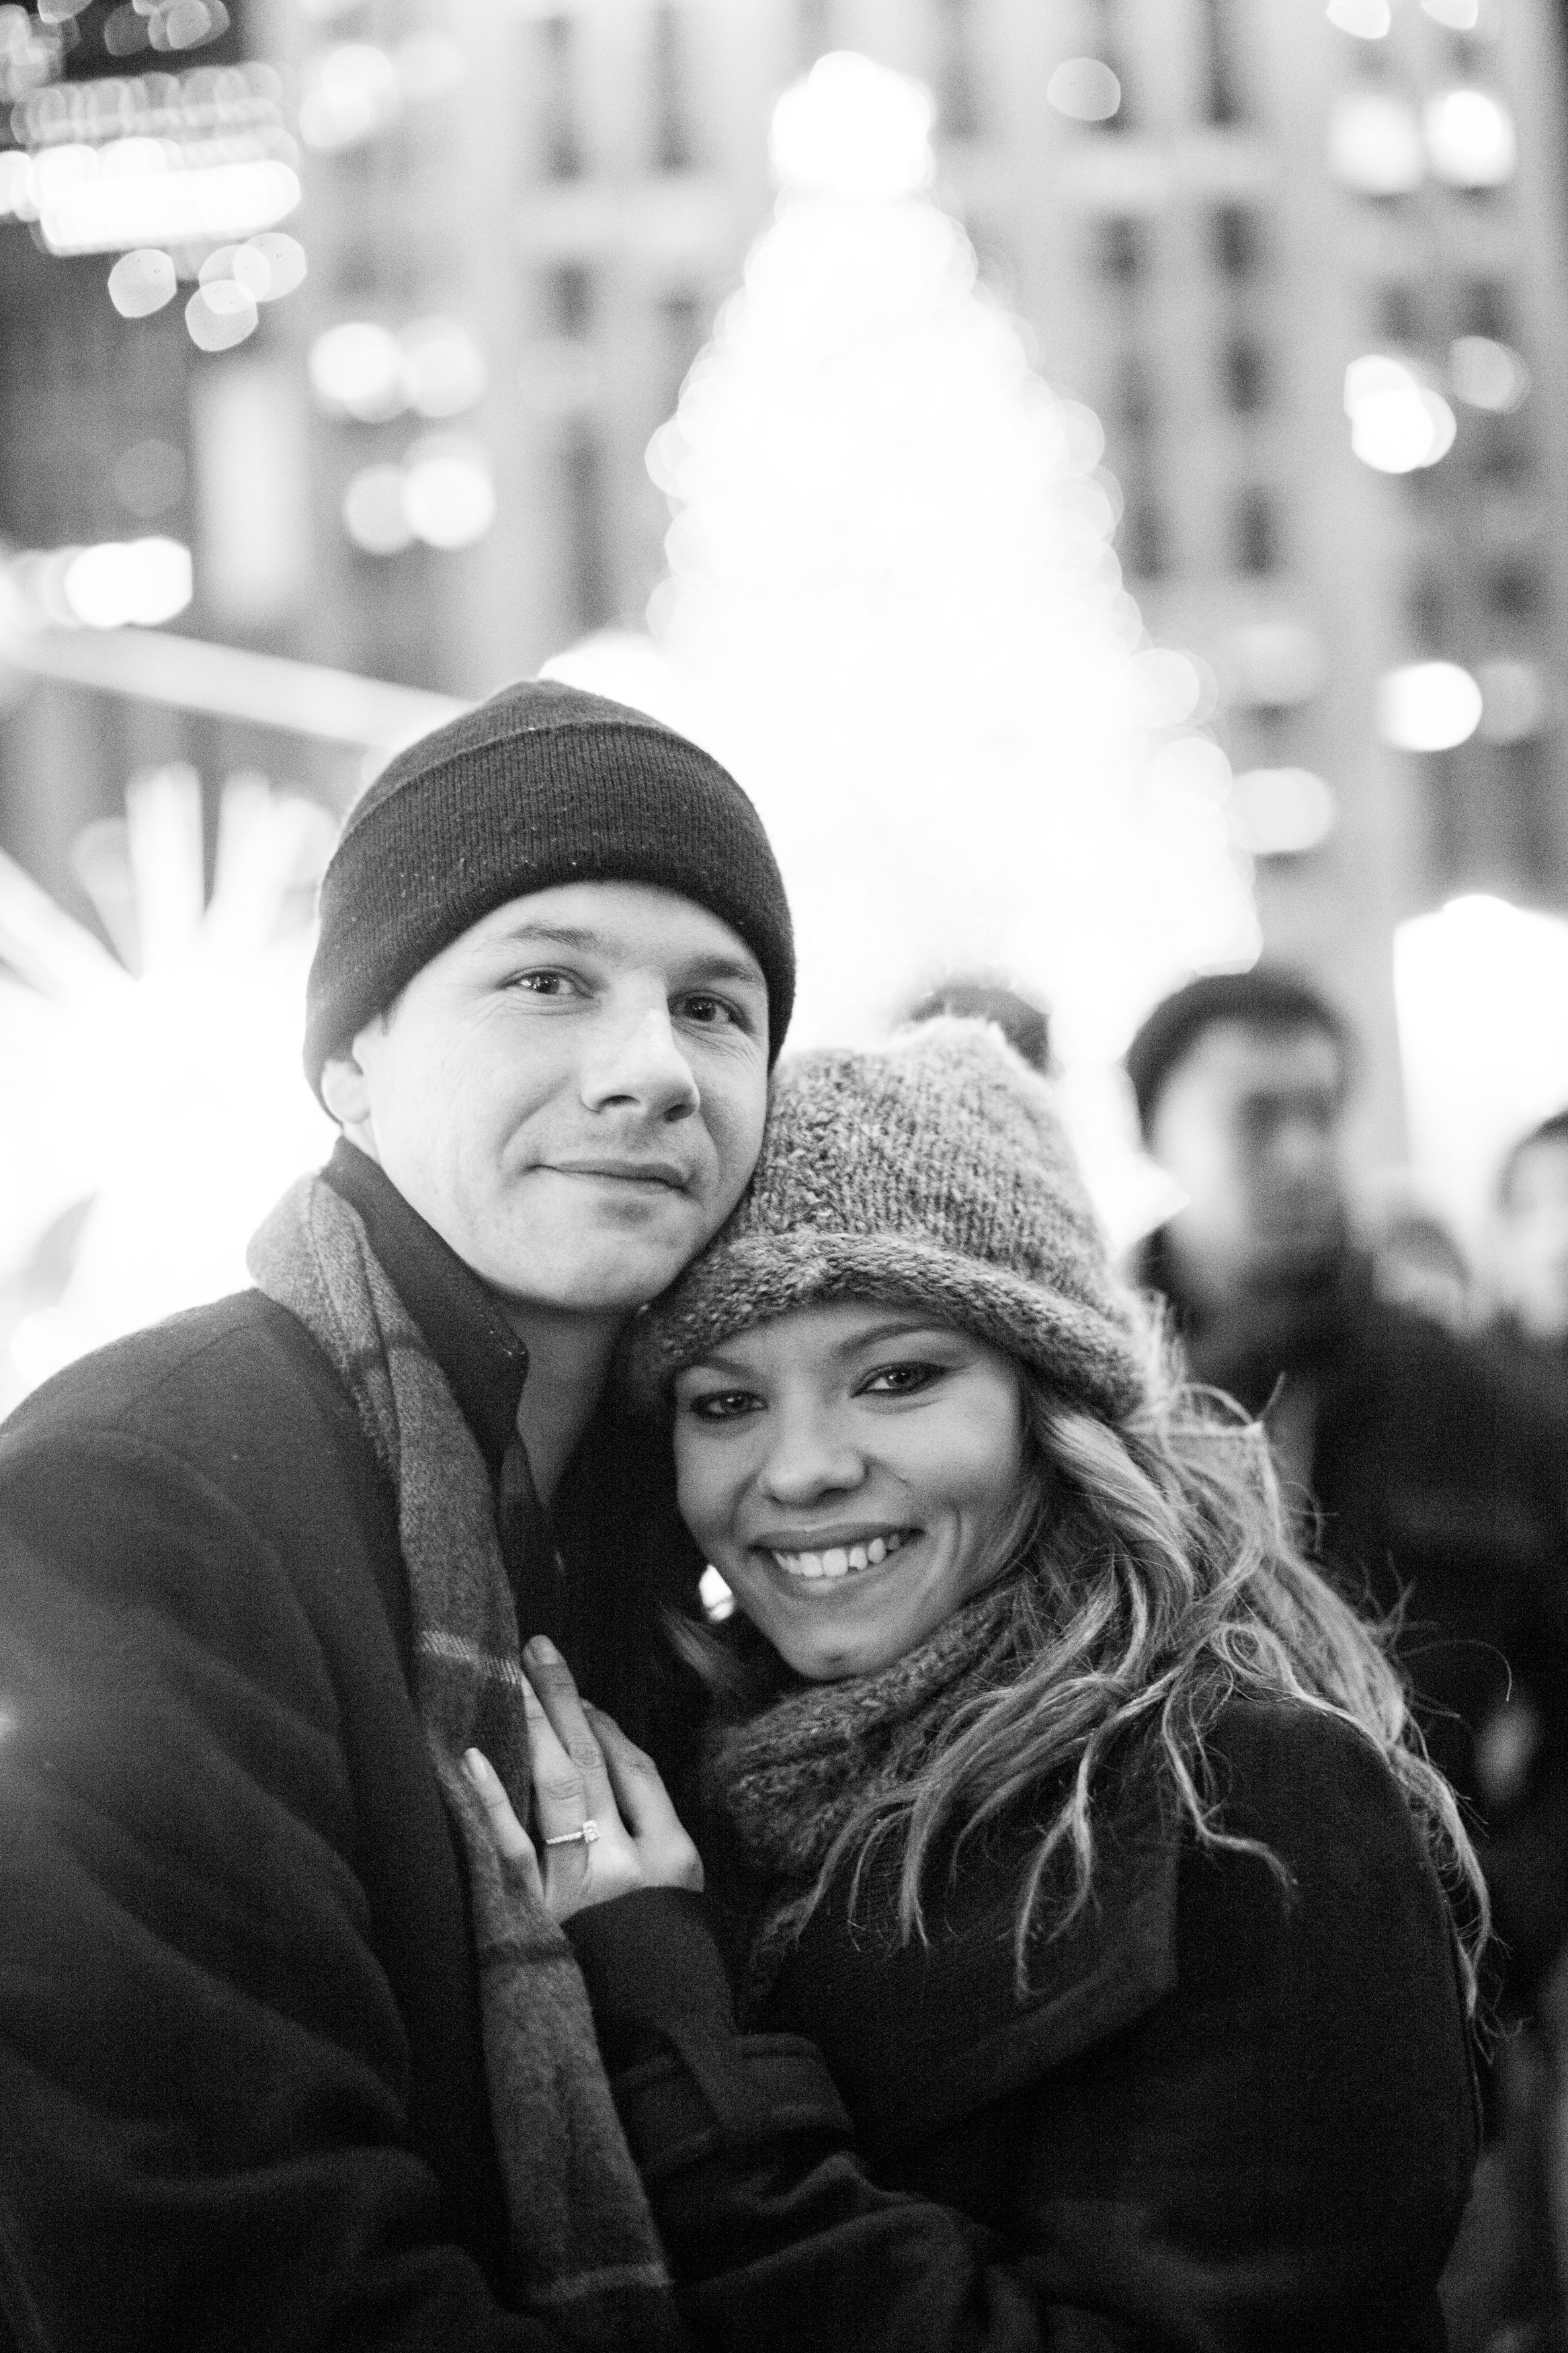 Image 10 of Christmas Day Proposal at Rockefeller Plaza